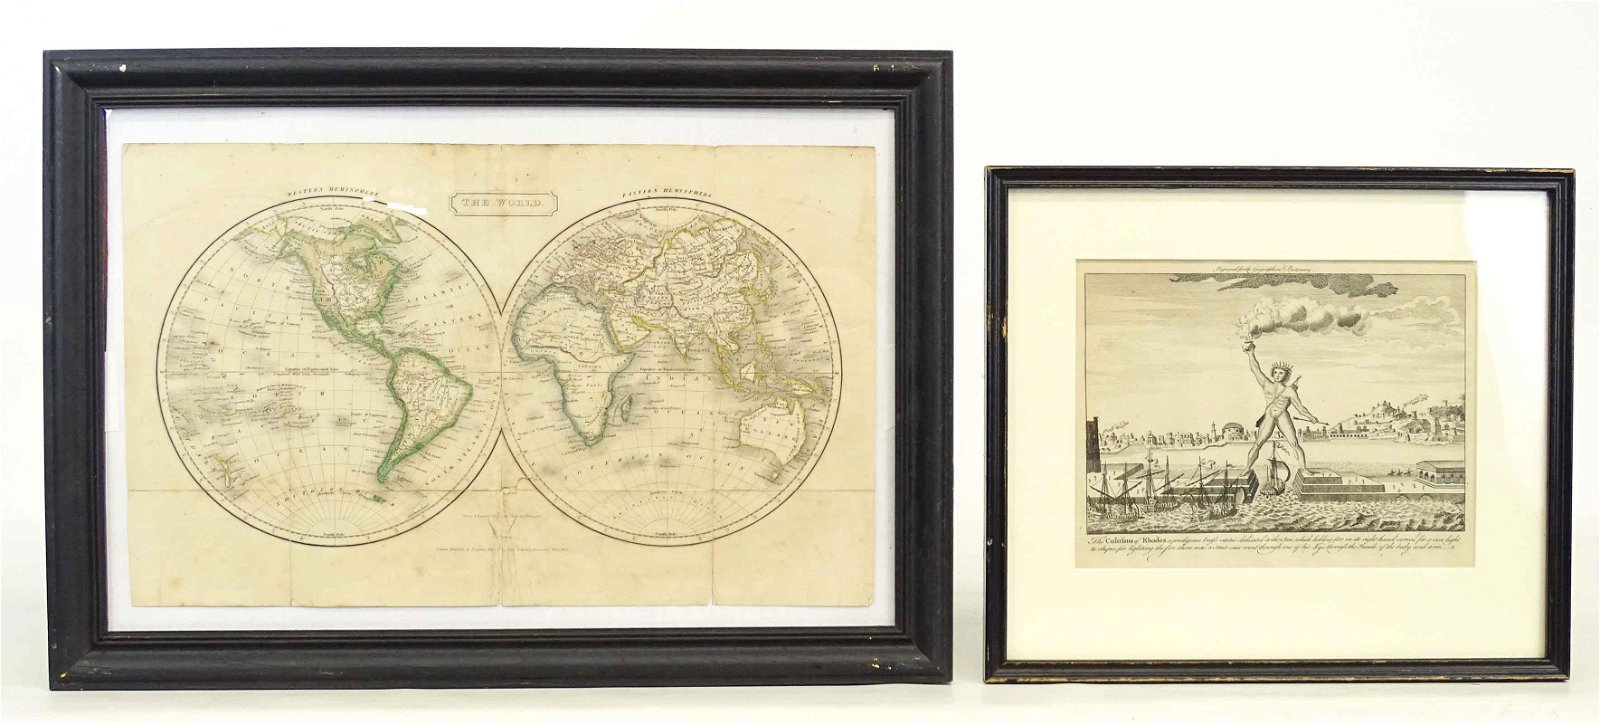 Antique View and Map